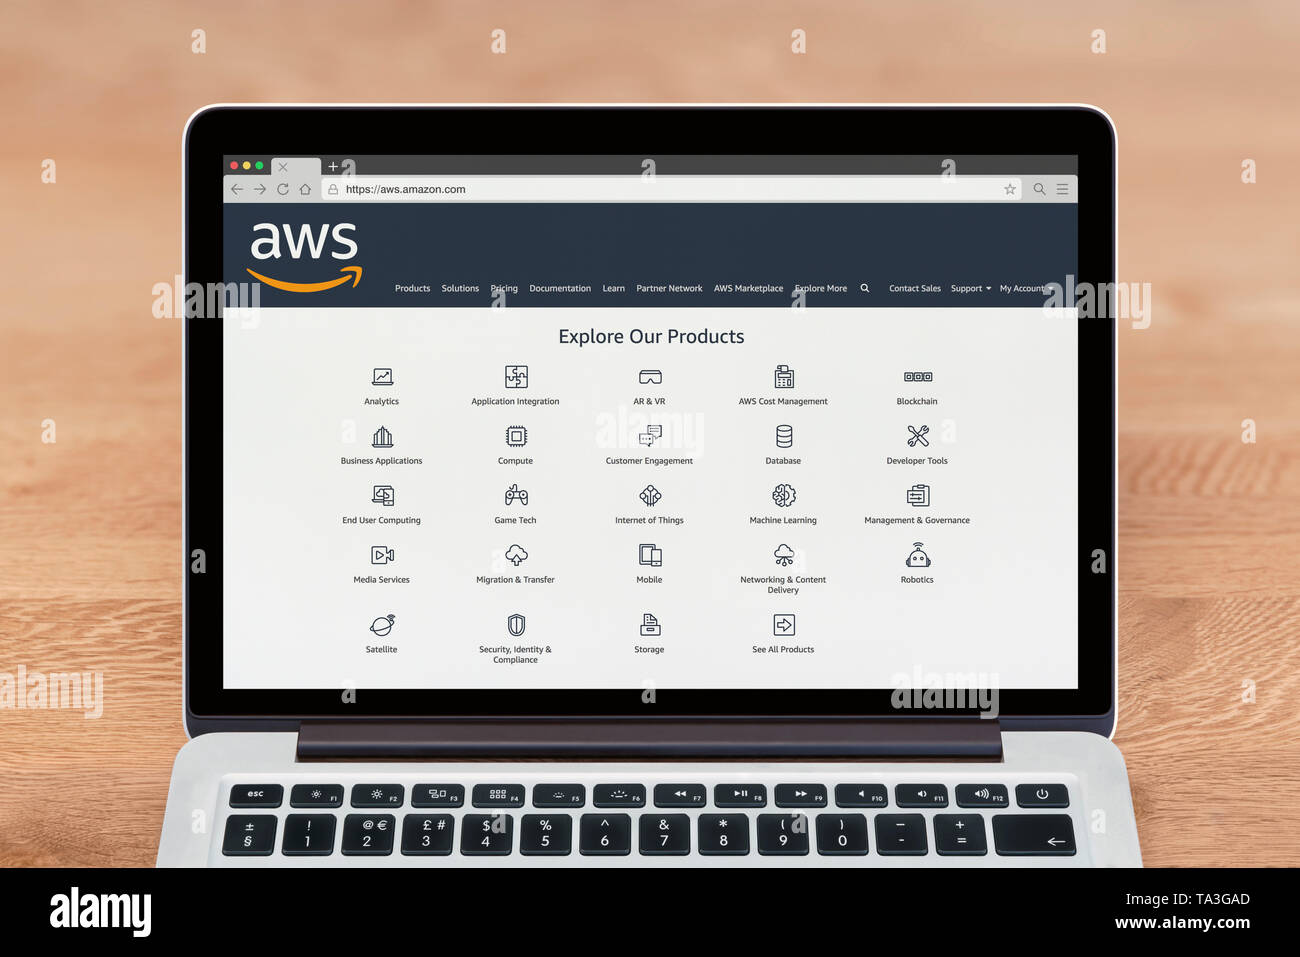 An Apple Macbook displays the Amazon Web Services (AWS) website (Editorial use only). - Stock Image